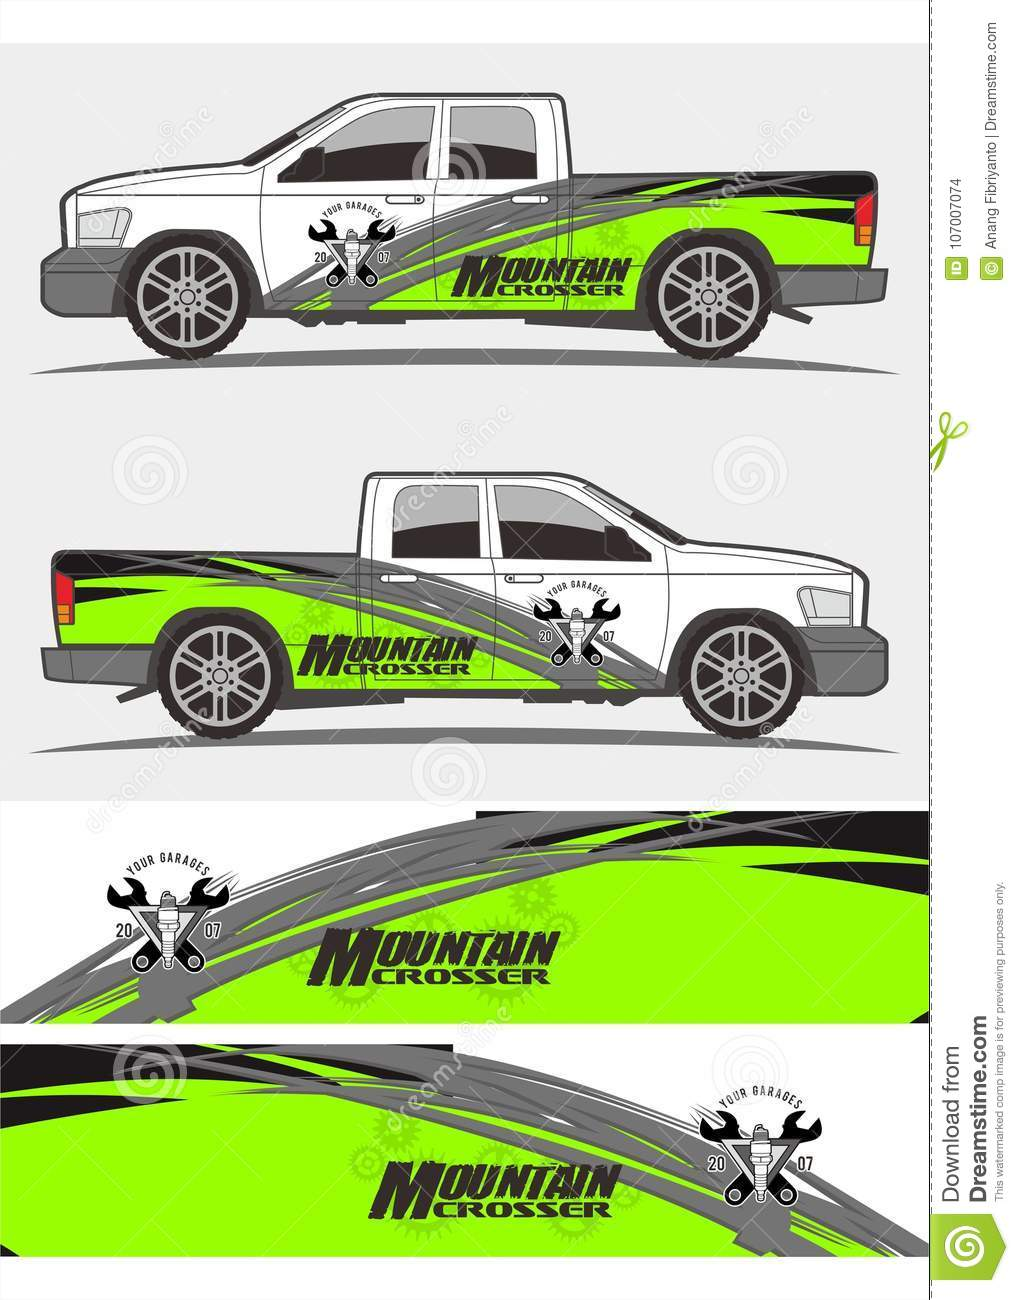 Professional graphics design decal kits for van vehicle and truck truck and vehicle decal graphics kits design tribal graphics kits for truck and other